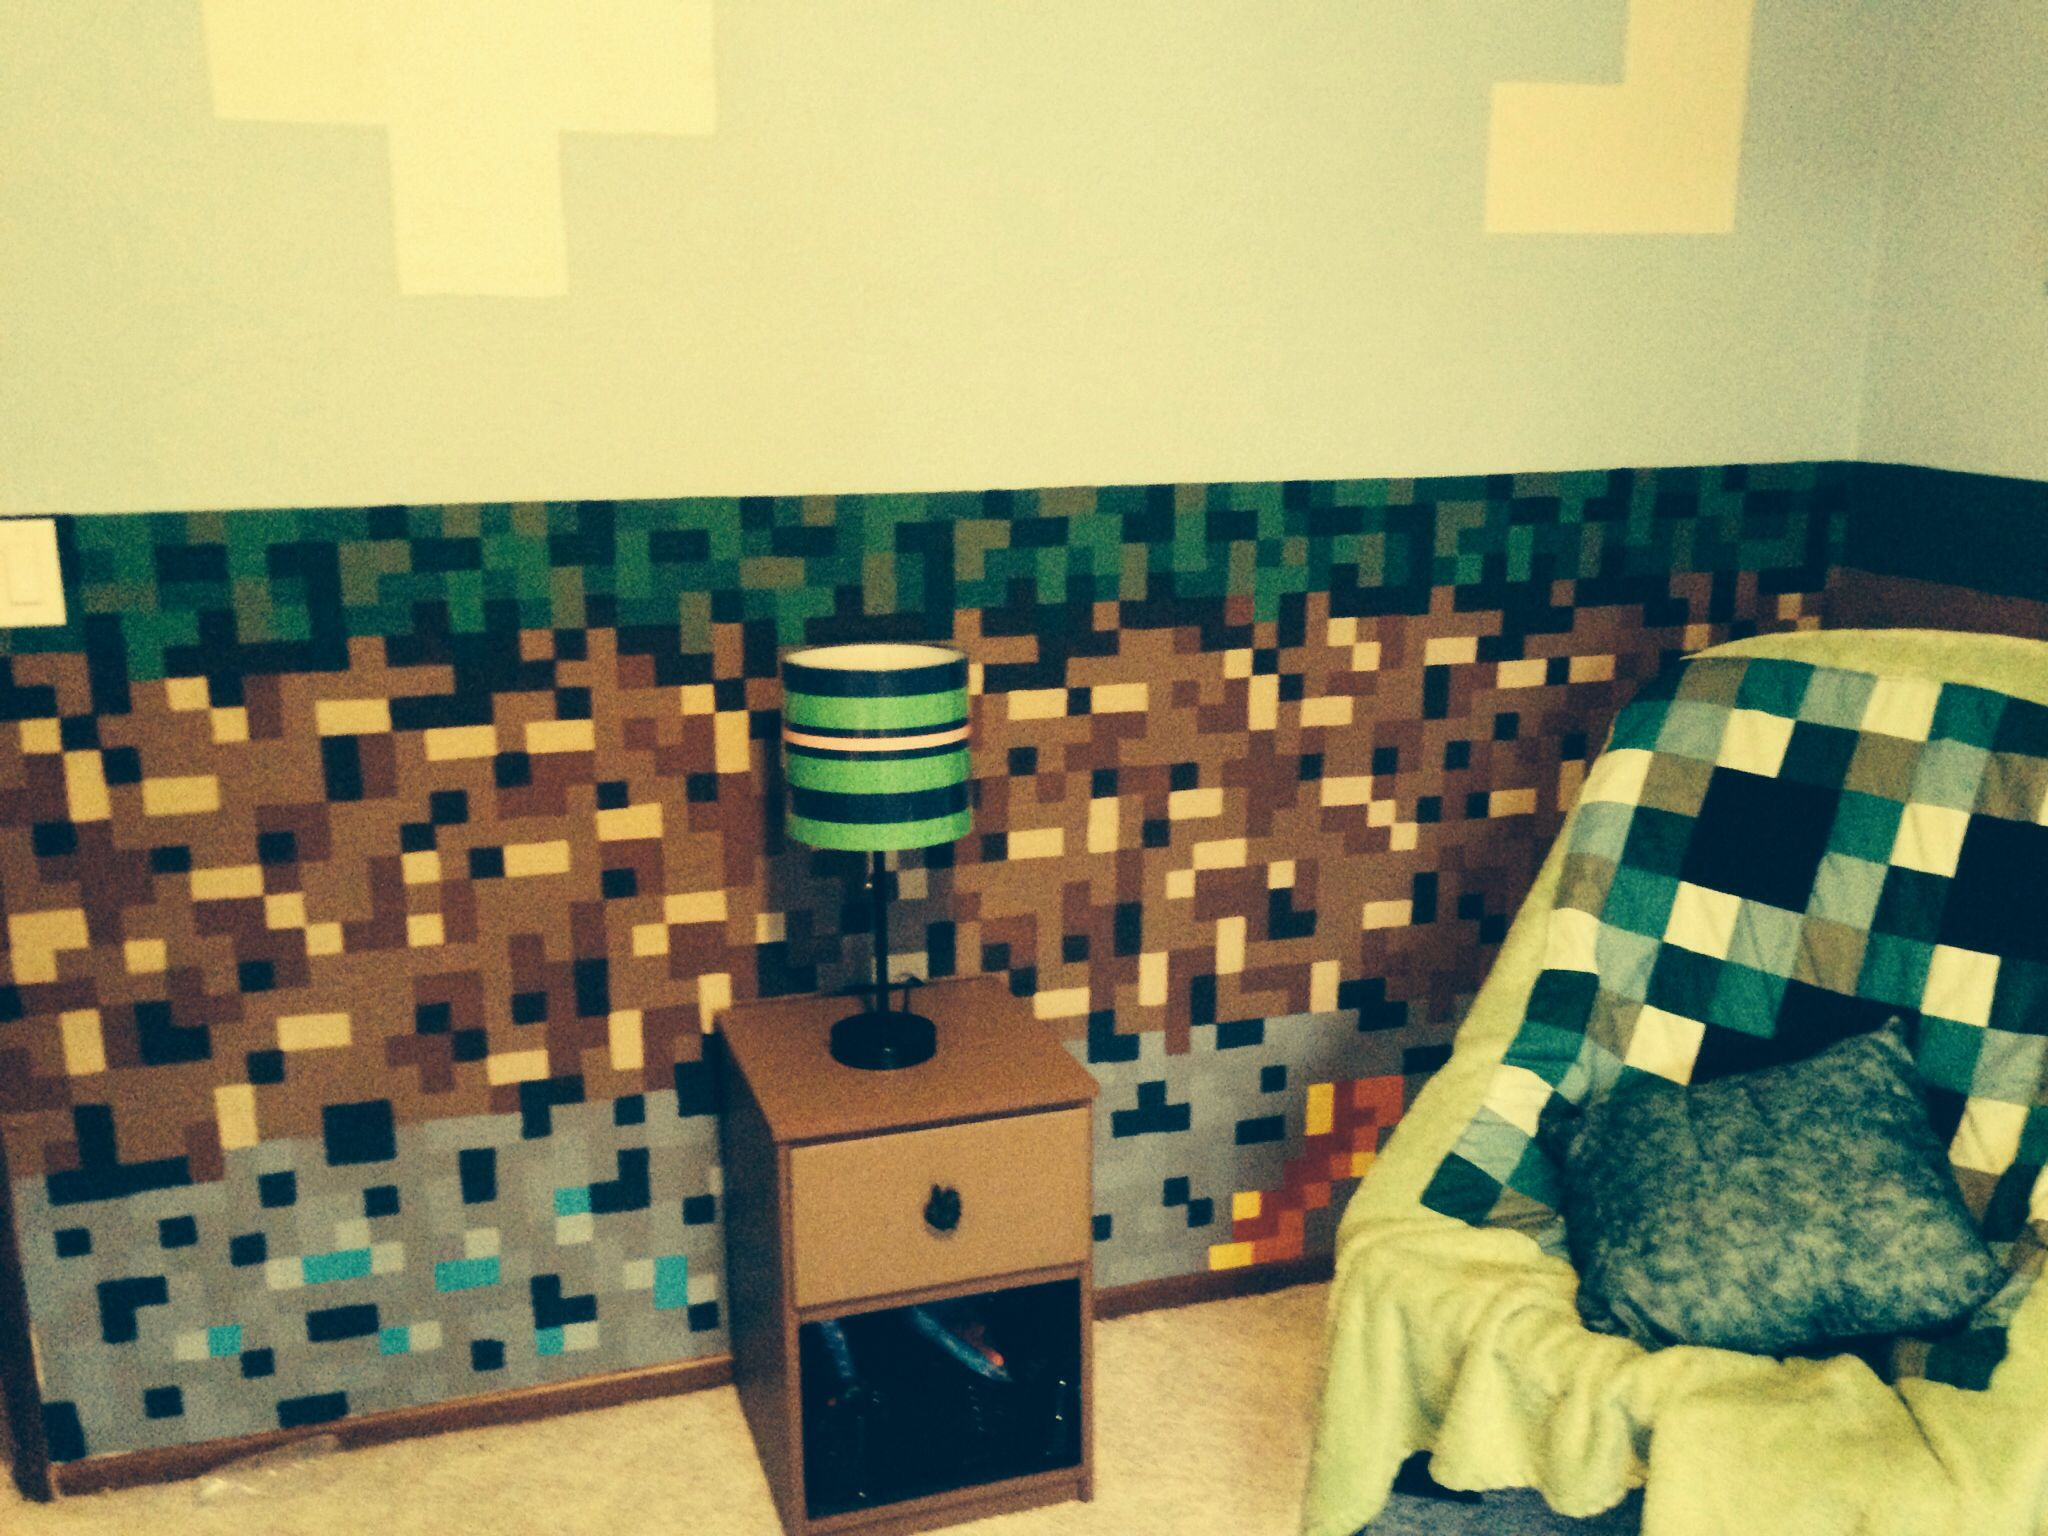 Minecraft Bedroom For My 9 Year Old Son